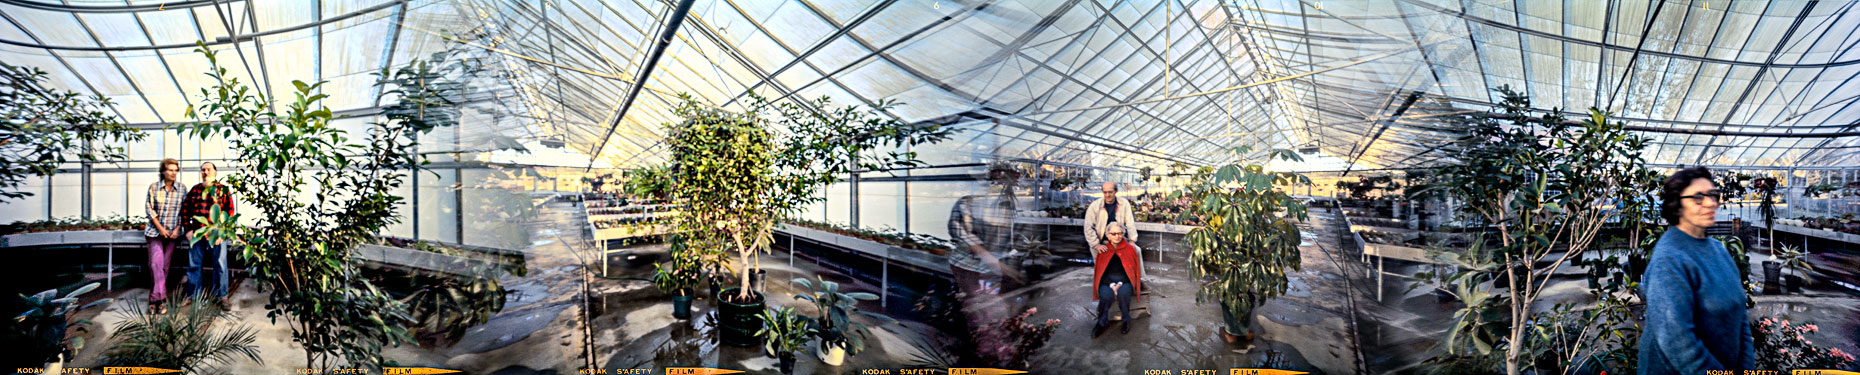 19_TobysGreenhouse_Millbrook_1973